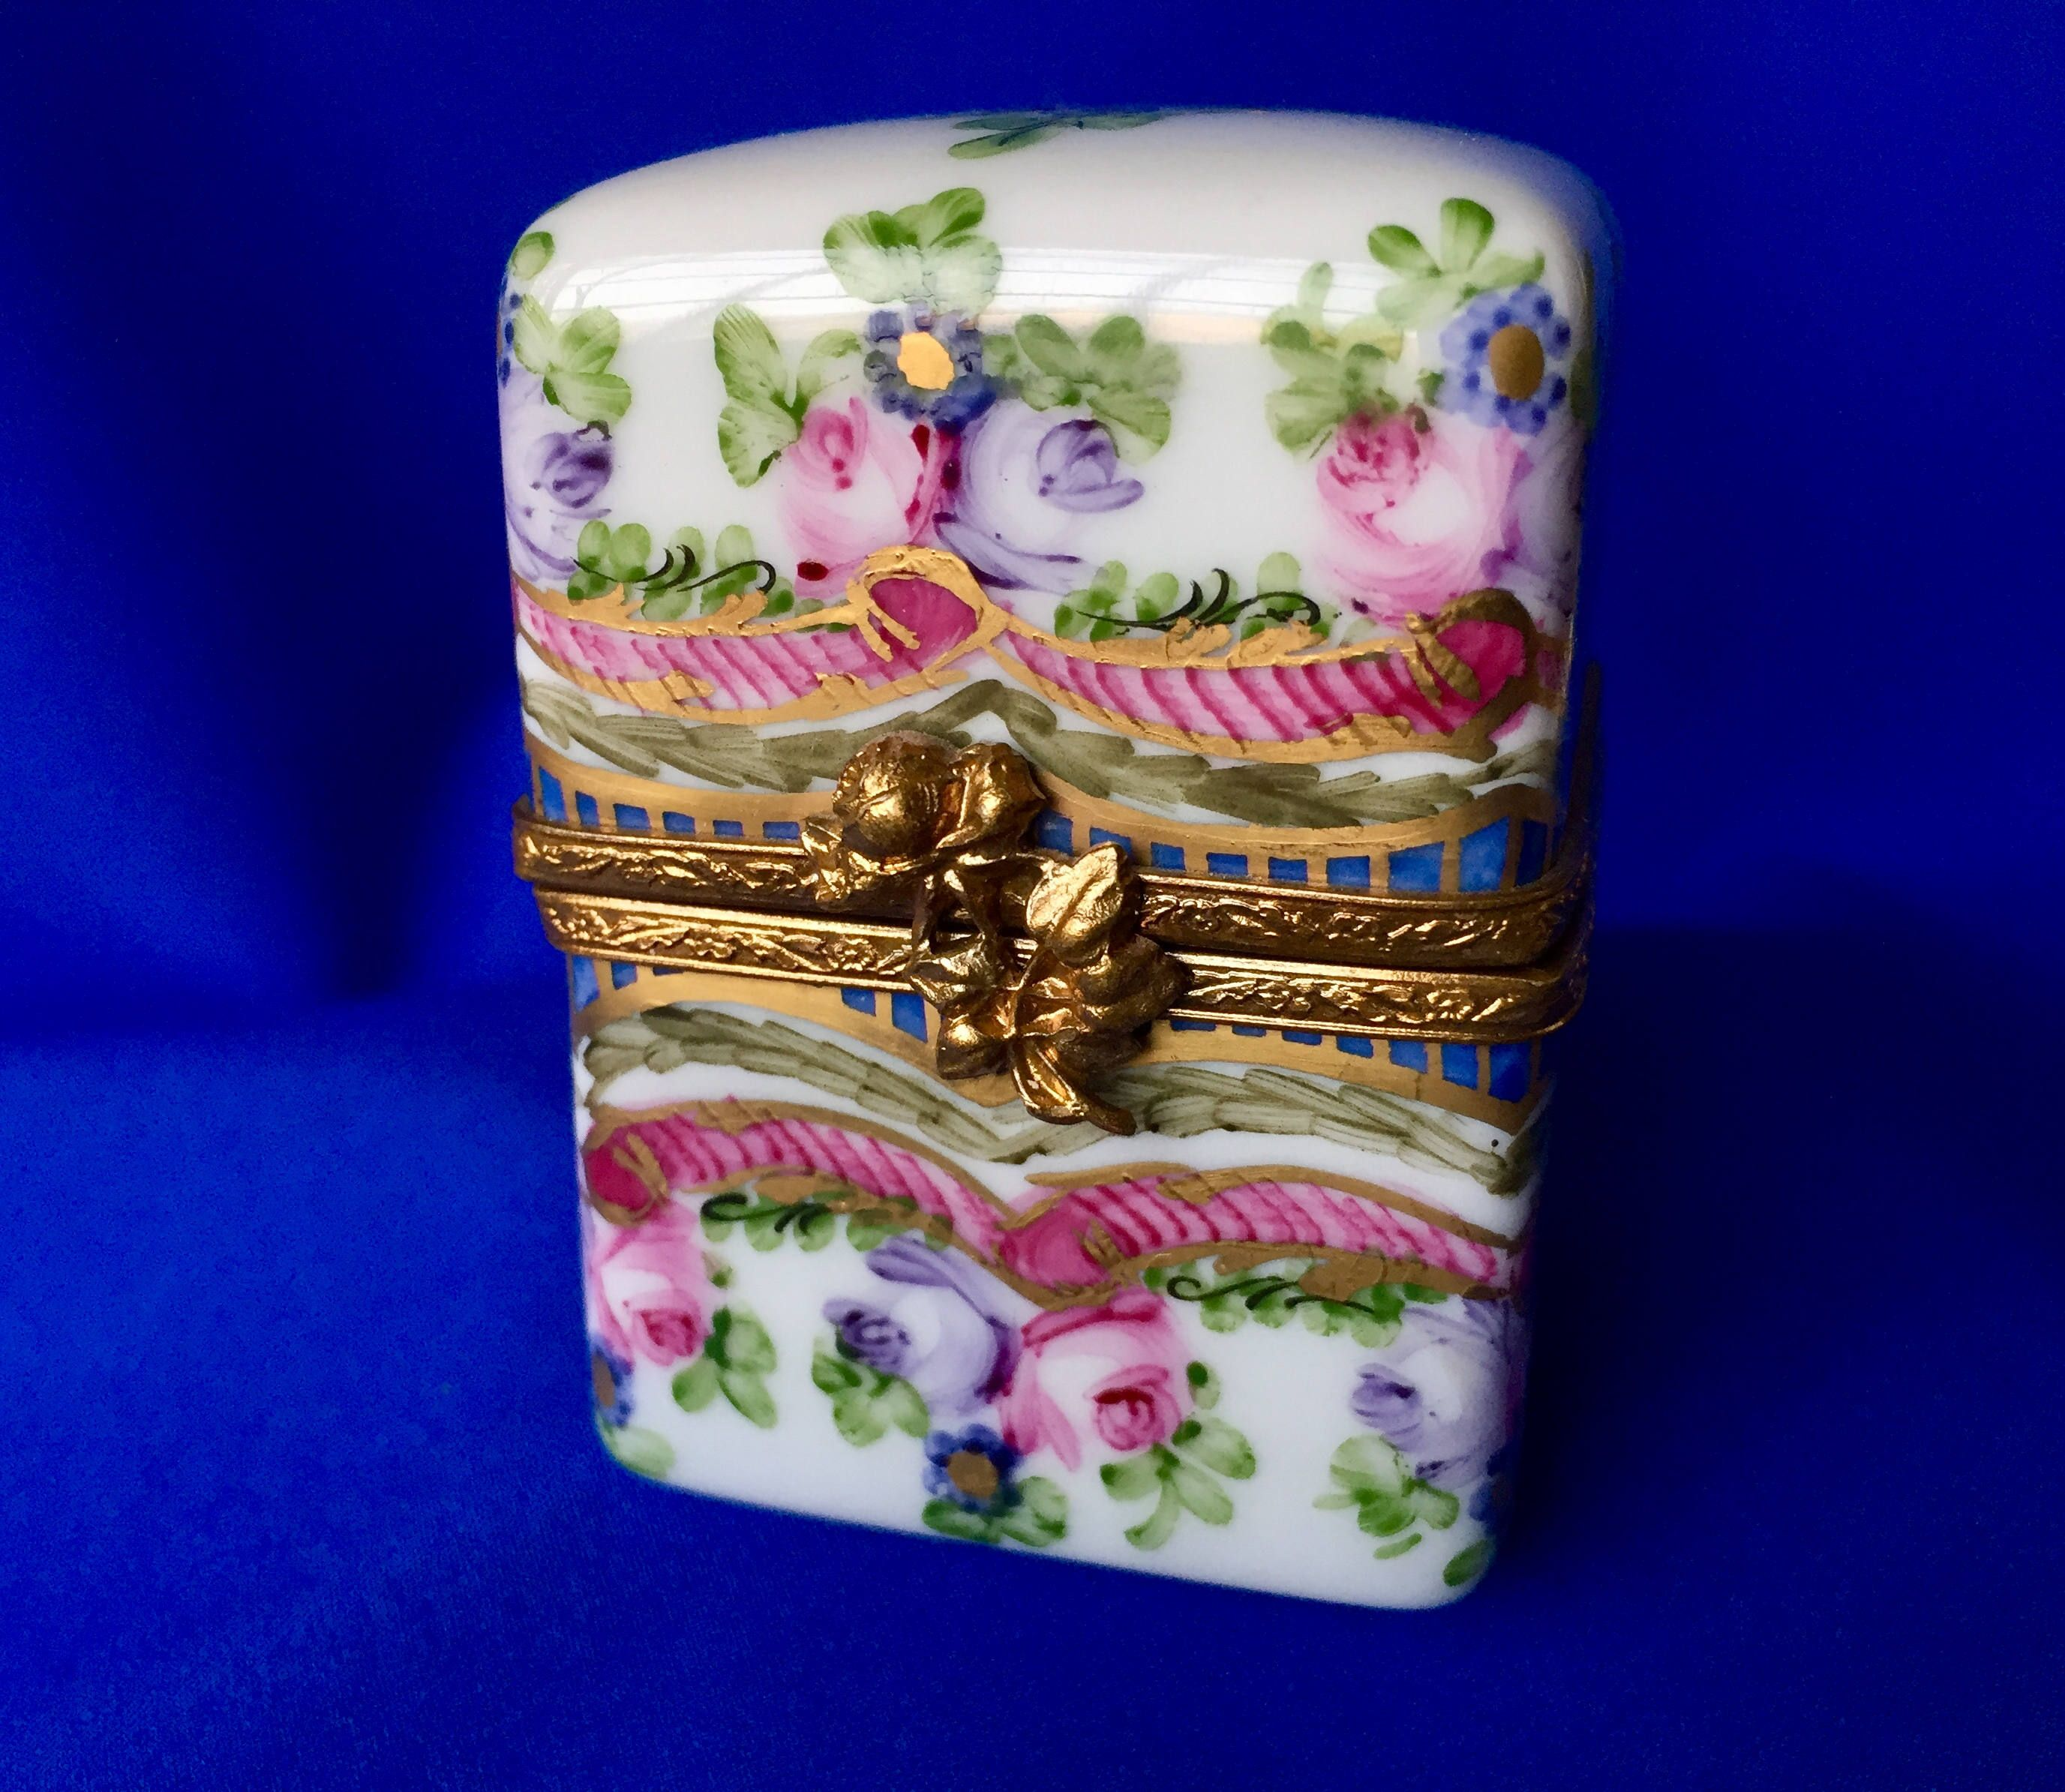 Vintage Signed Limoges Hand Painted Tall Trinket Box Vintage Limoges Trinket Box Limoges France Hand Painted Porcelain Box Trinket Boxes Vintage Signs Porcelain